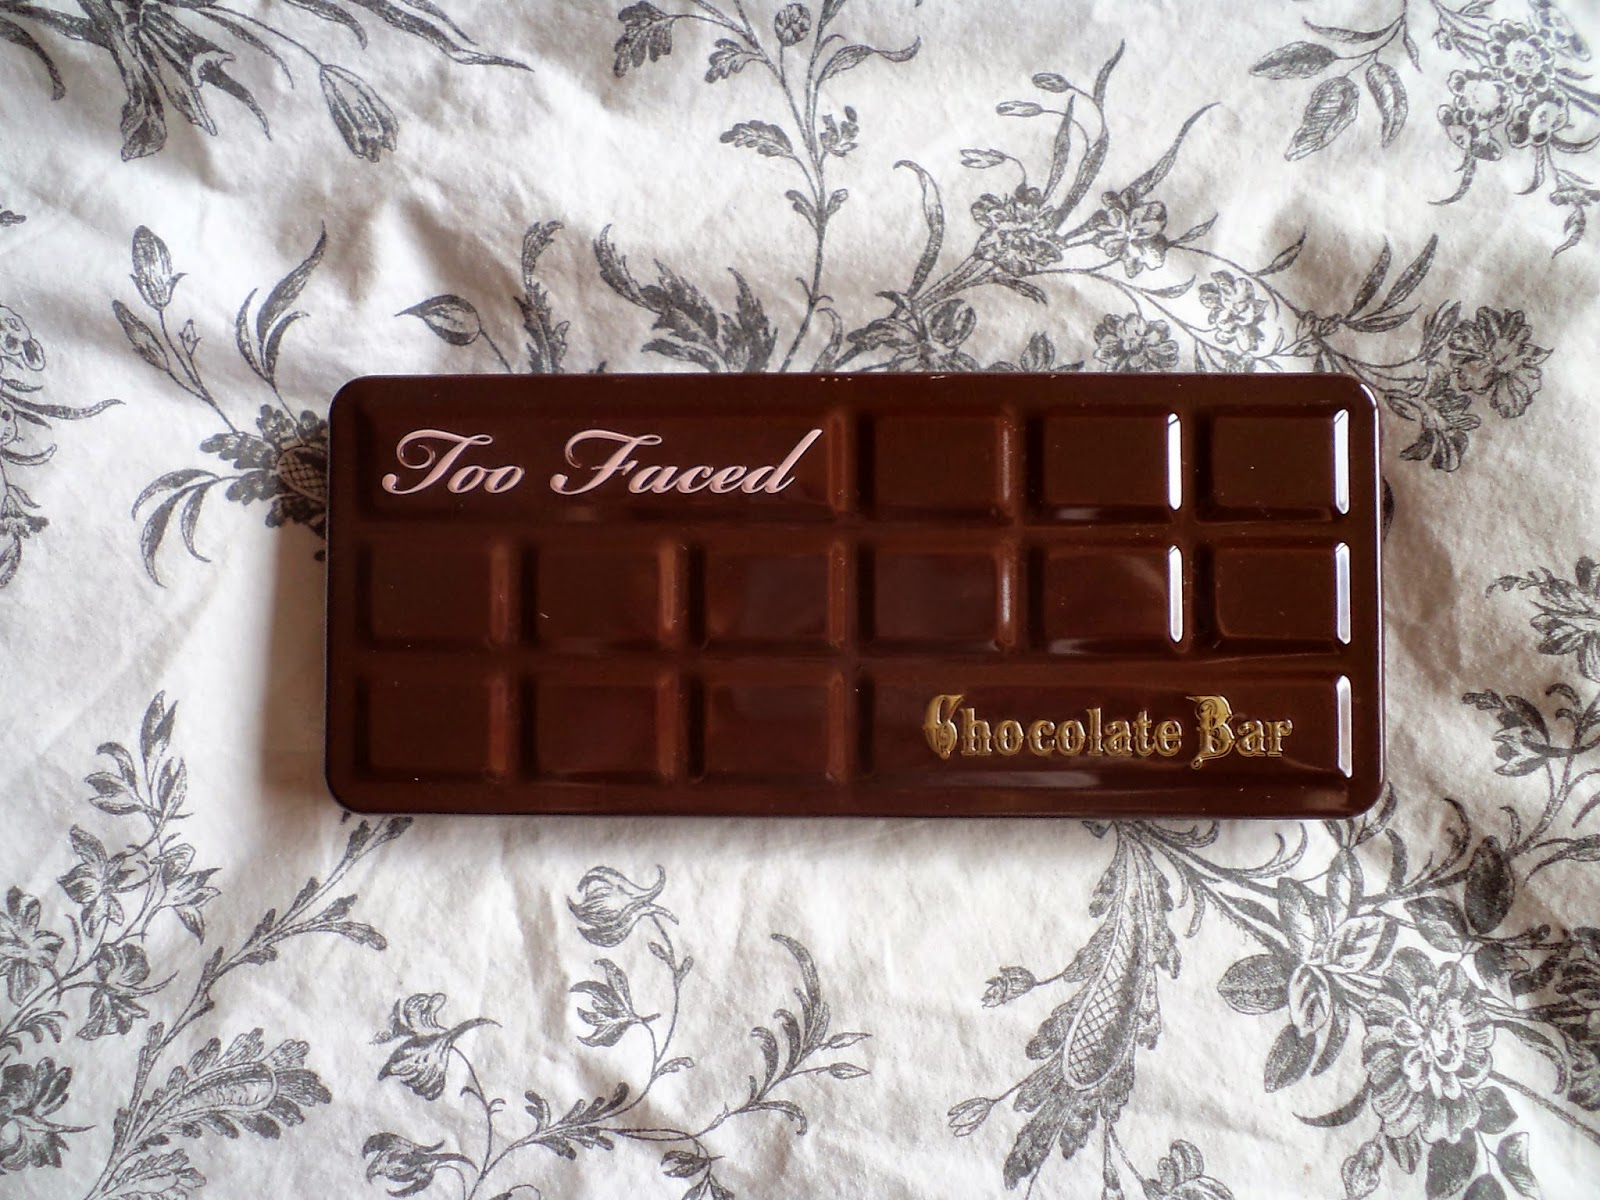 Too Faced Chocolate Bar Review and Swatches